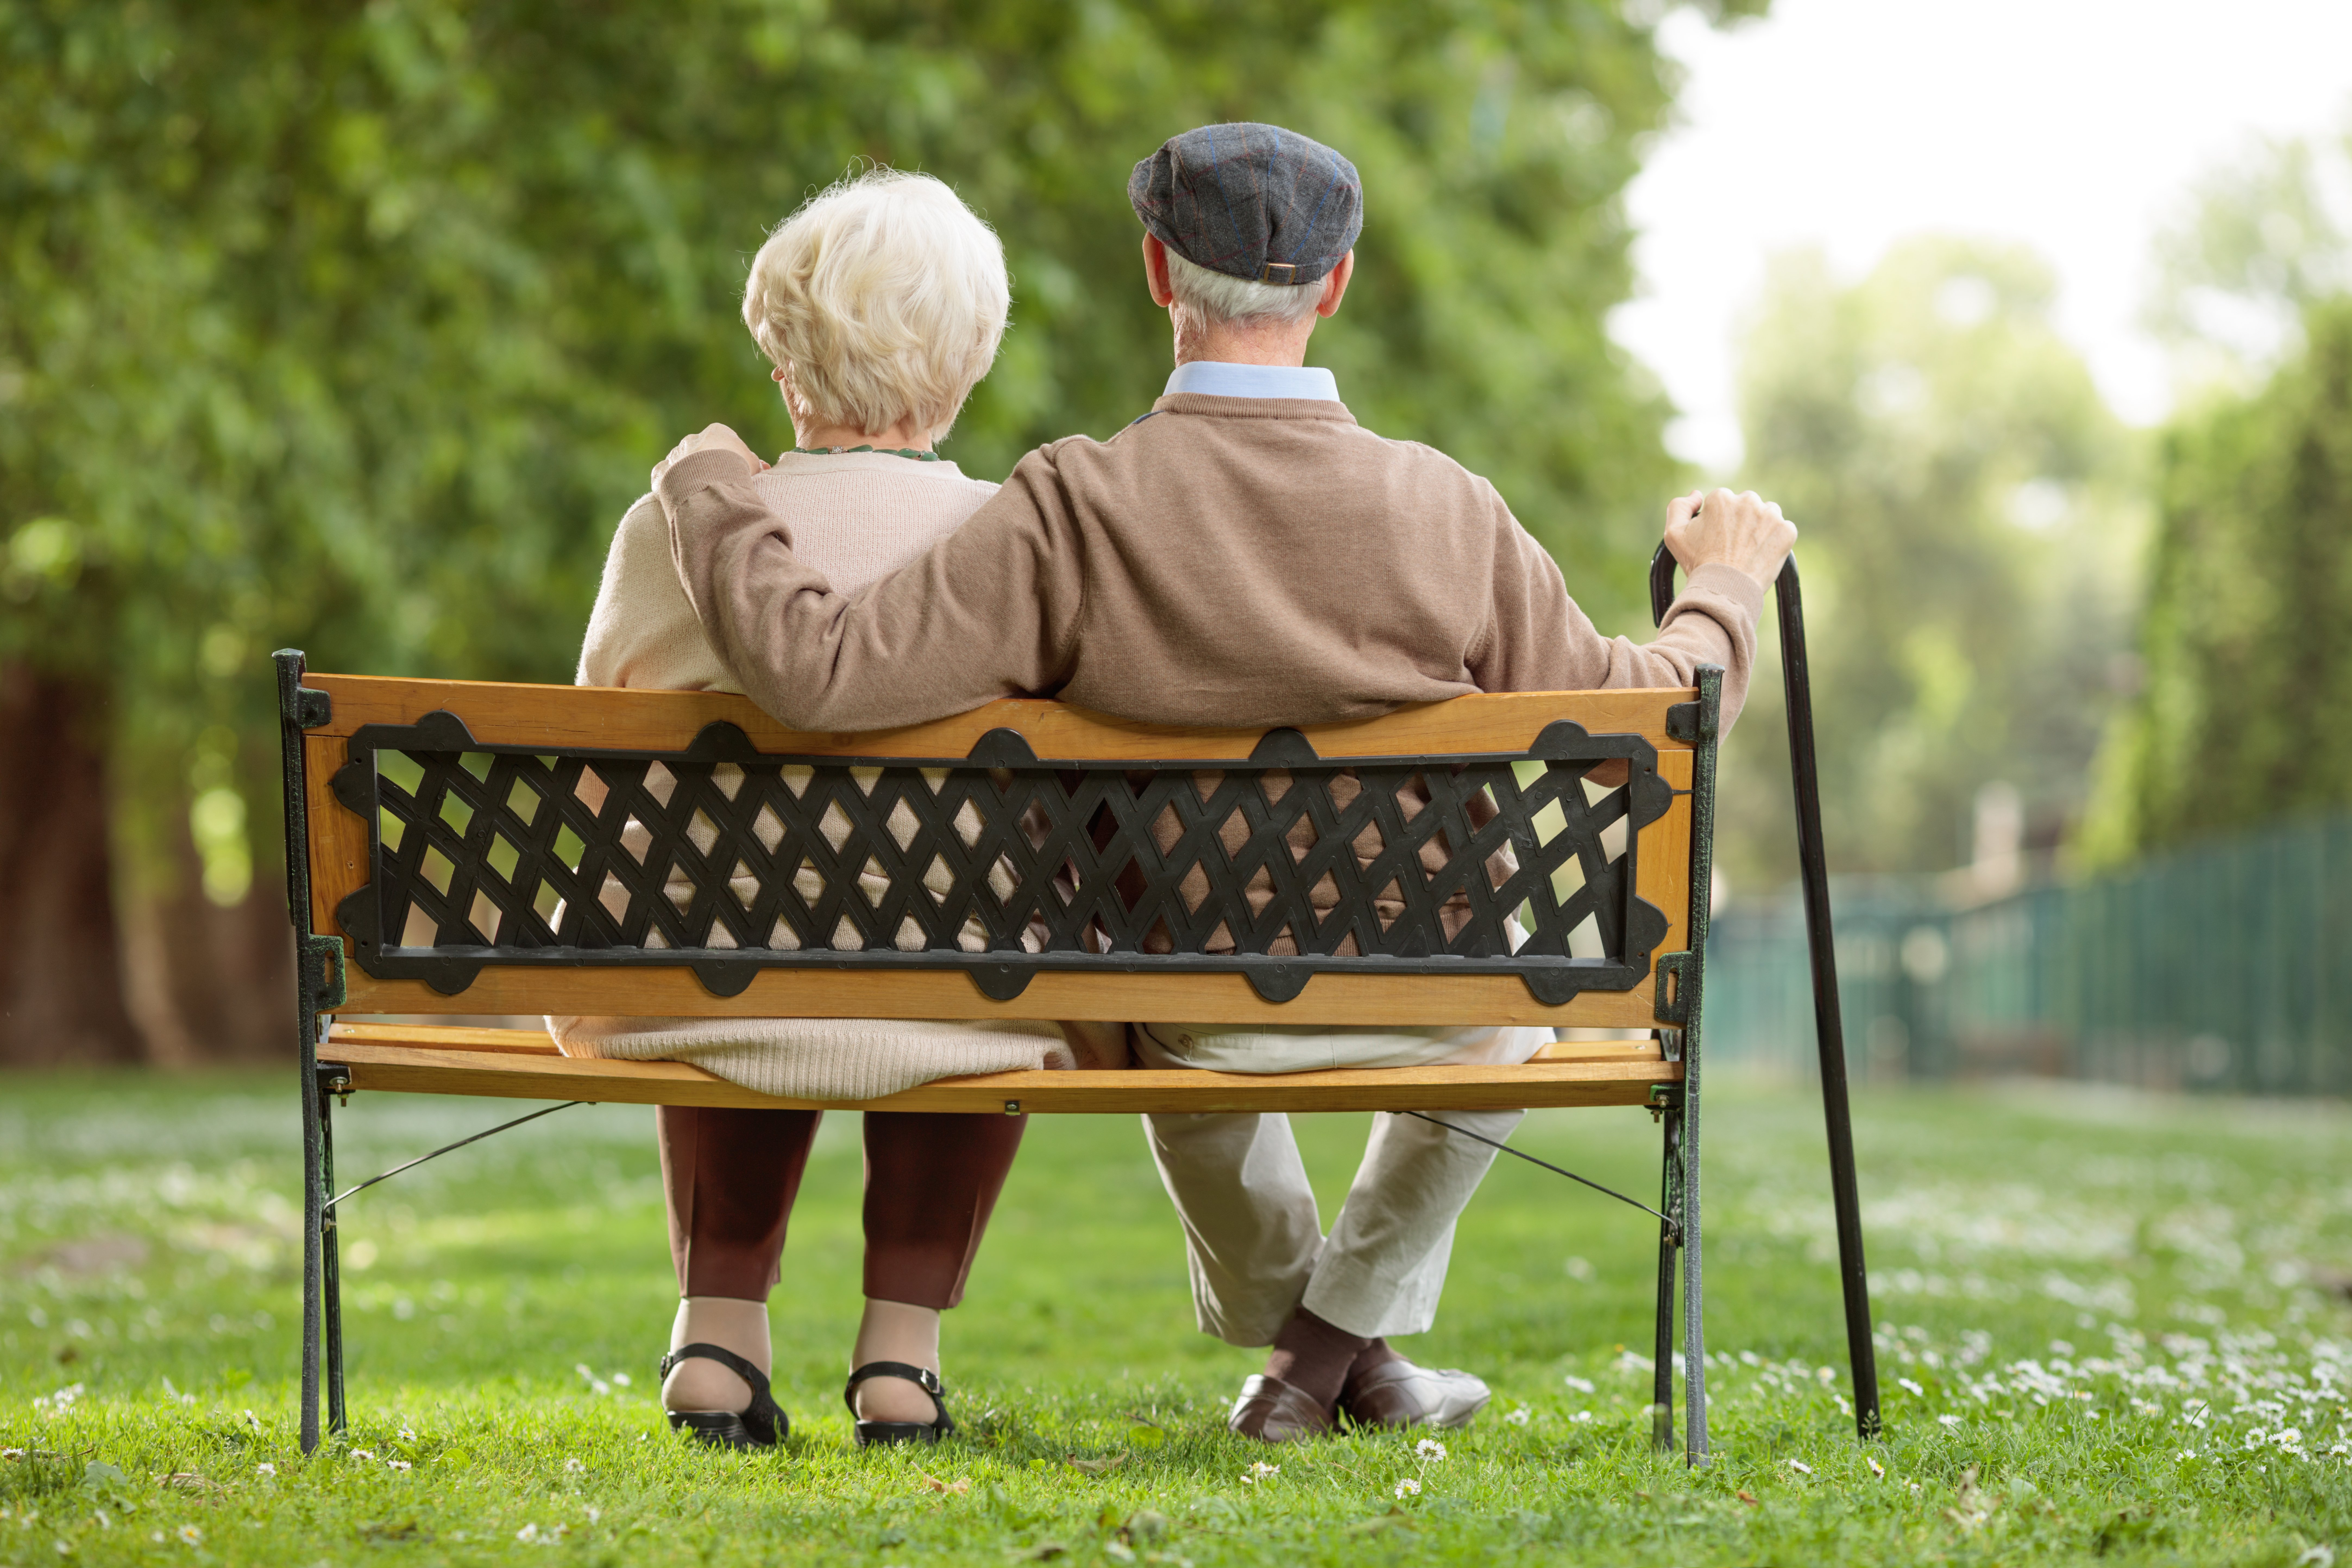 Senior couple sitting on a wooden bench in the park. | Photo: Shutterstock